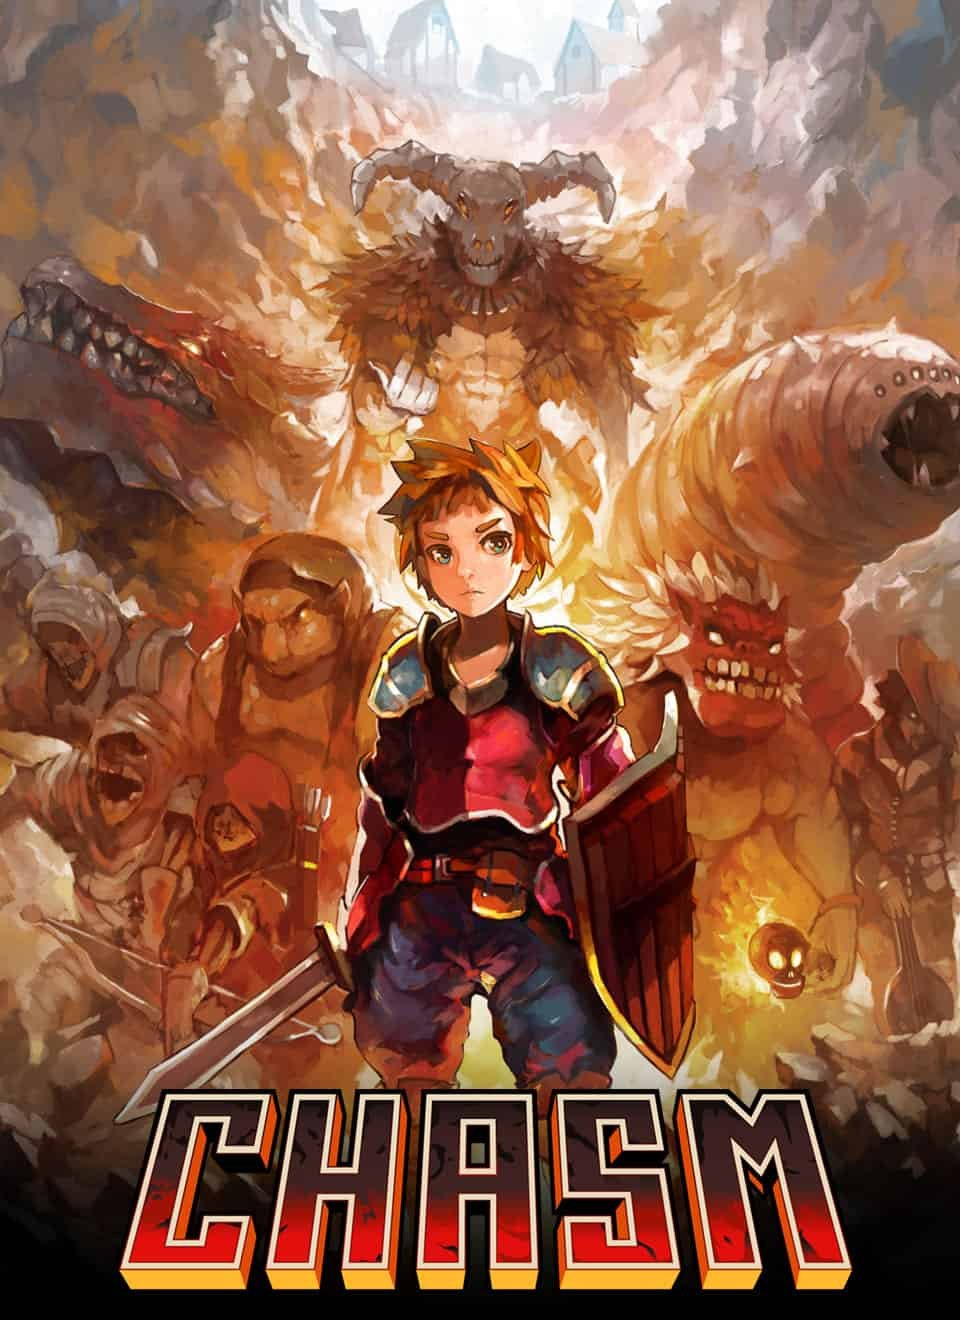 Chasm (PC) Review 4